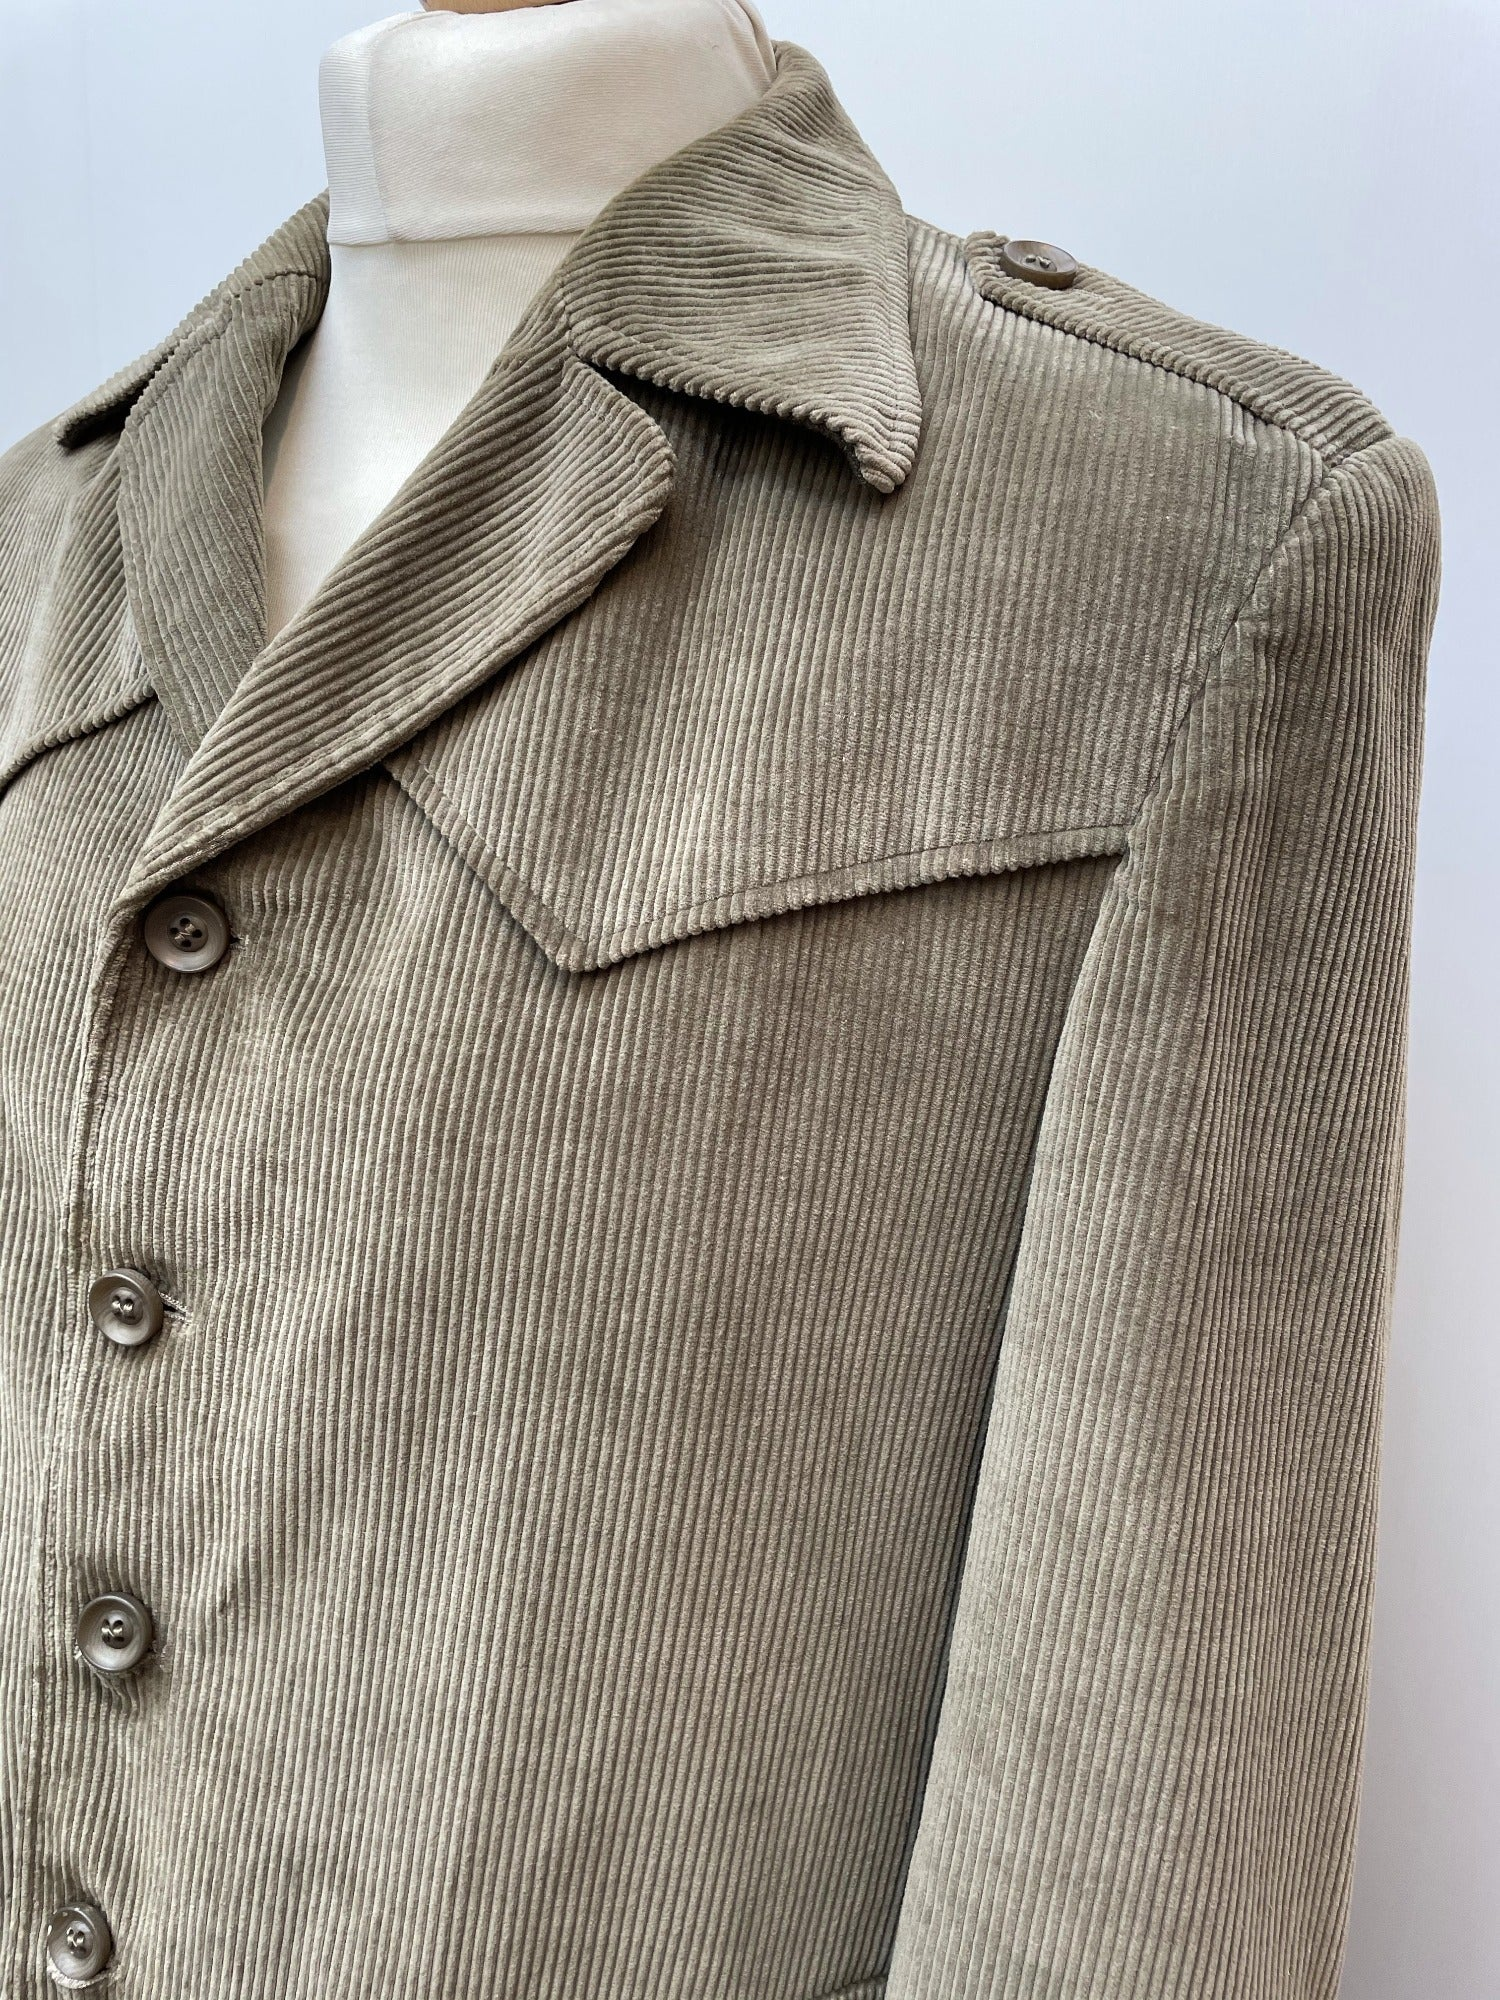 vintage  Urban Village Vintage  urban village  safari style  Safari jacket  safari  M  khaki  jacket  Green  corduroy  corded  cord  collar  70  1970s